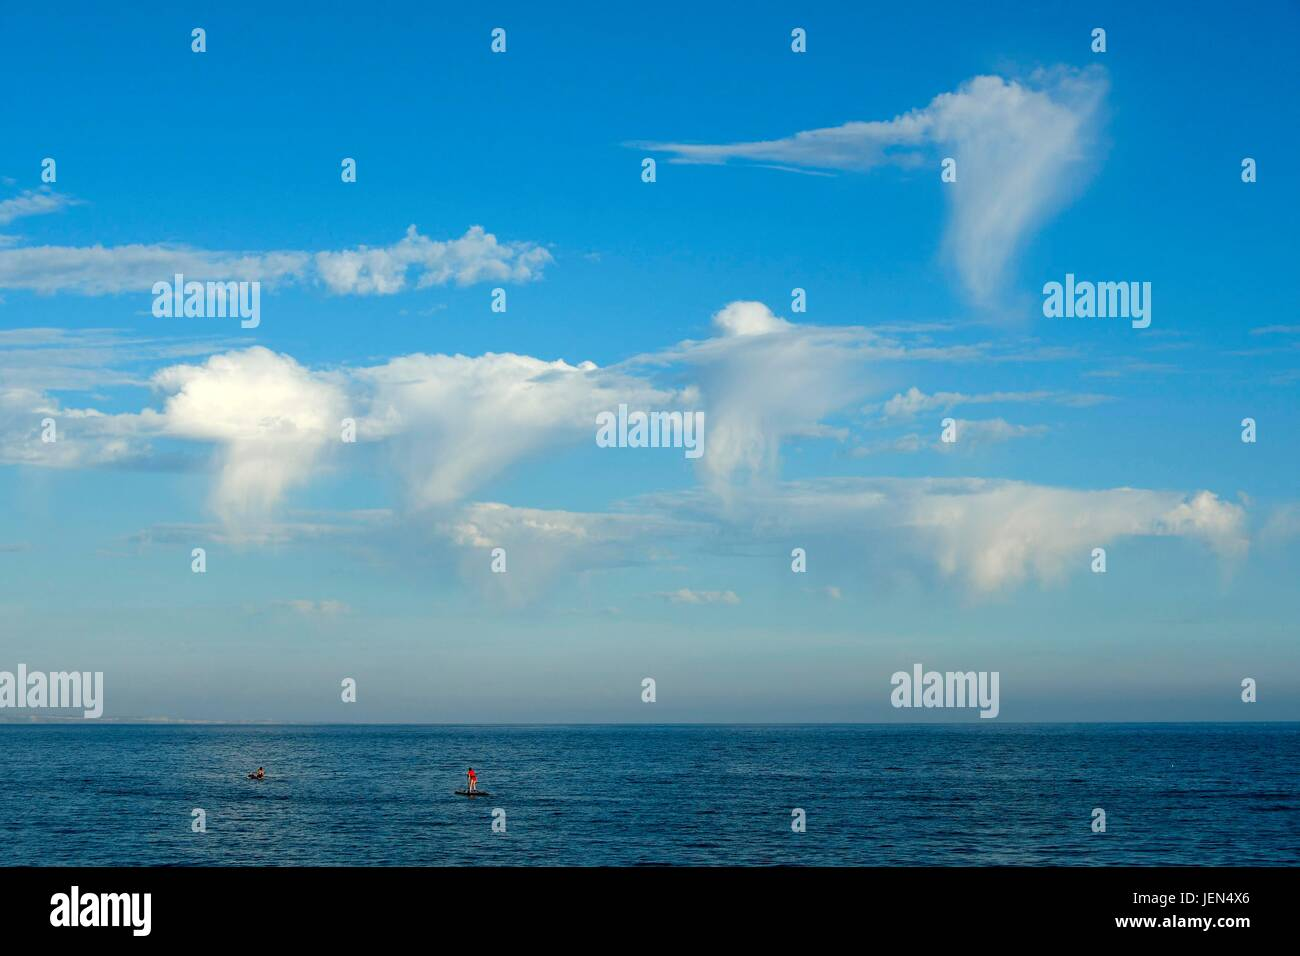 West Bay, Dorset, UK. 26th June, 2017. UK Weather. Wispy cloud formations in the sky on a glorious sunny evening - Stock Image